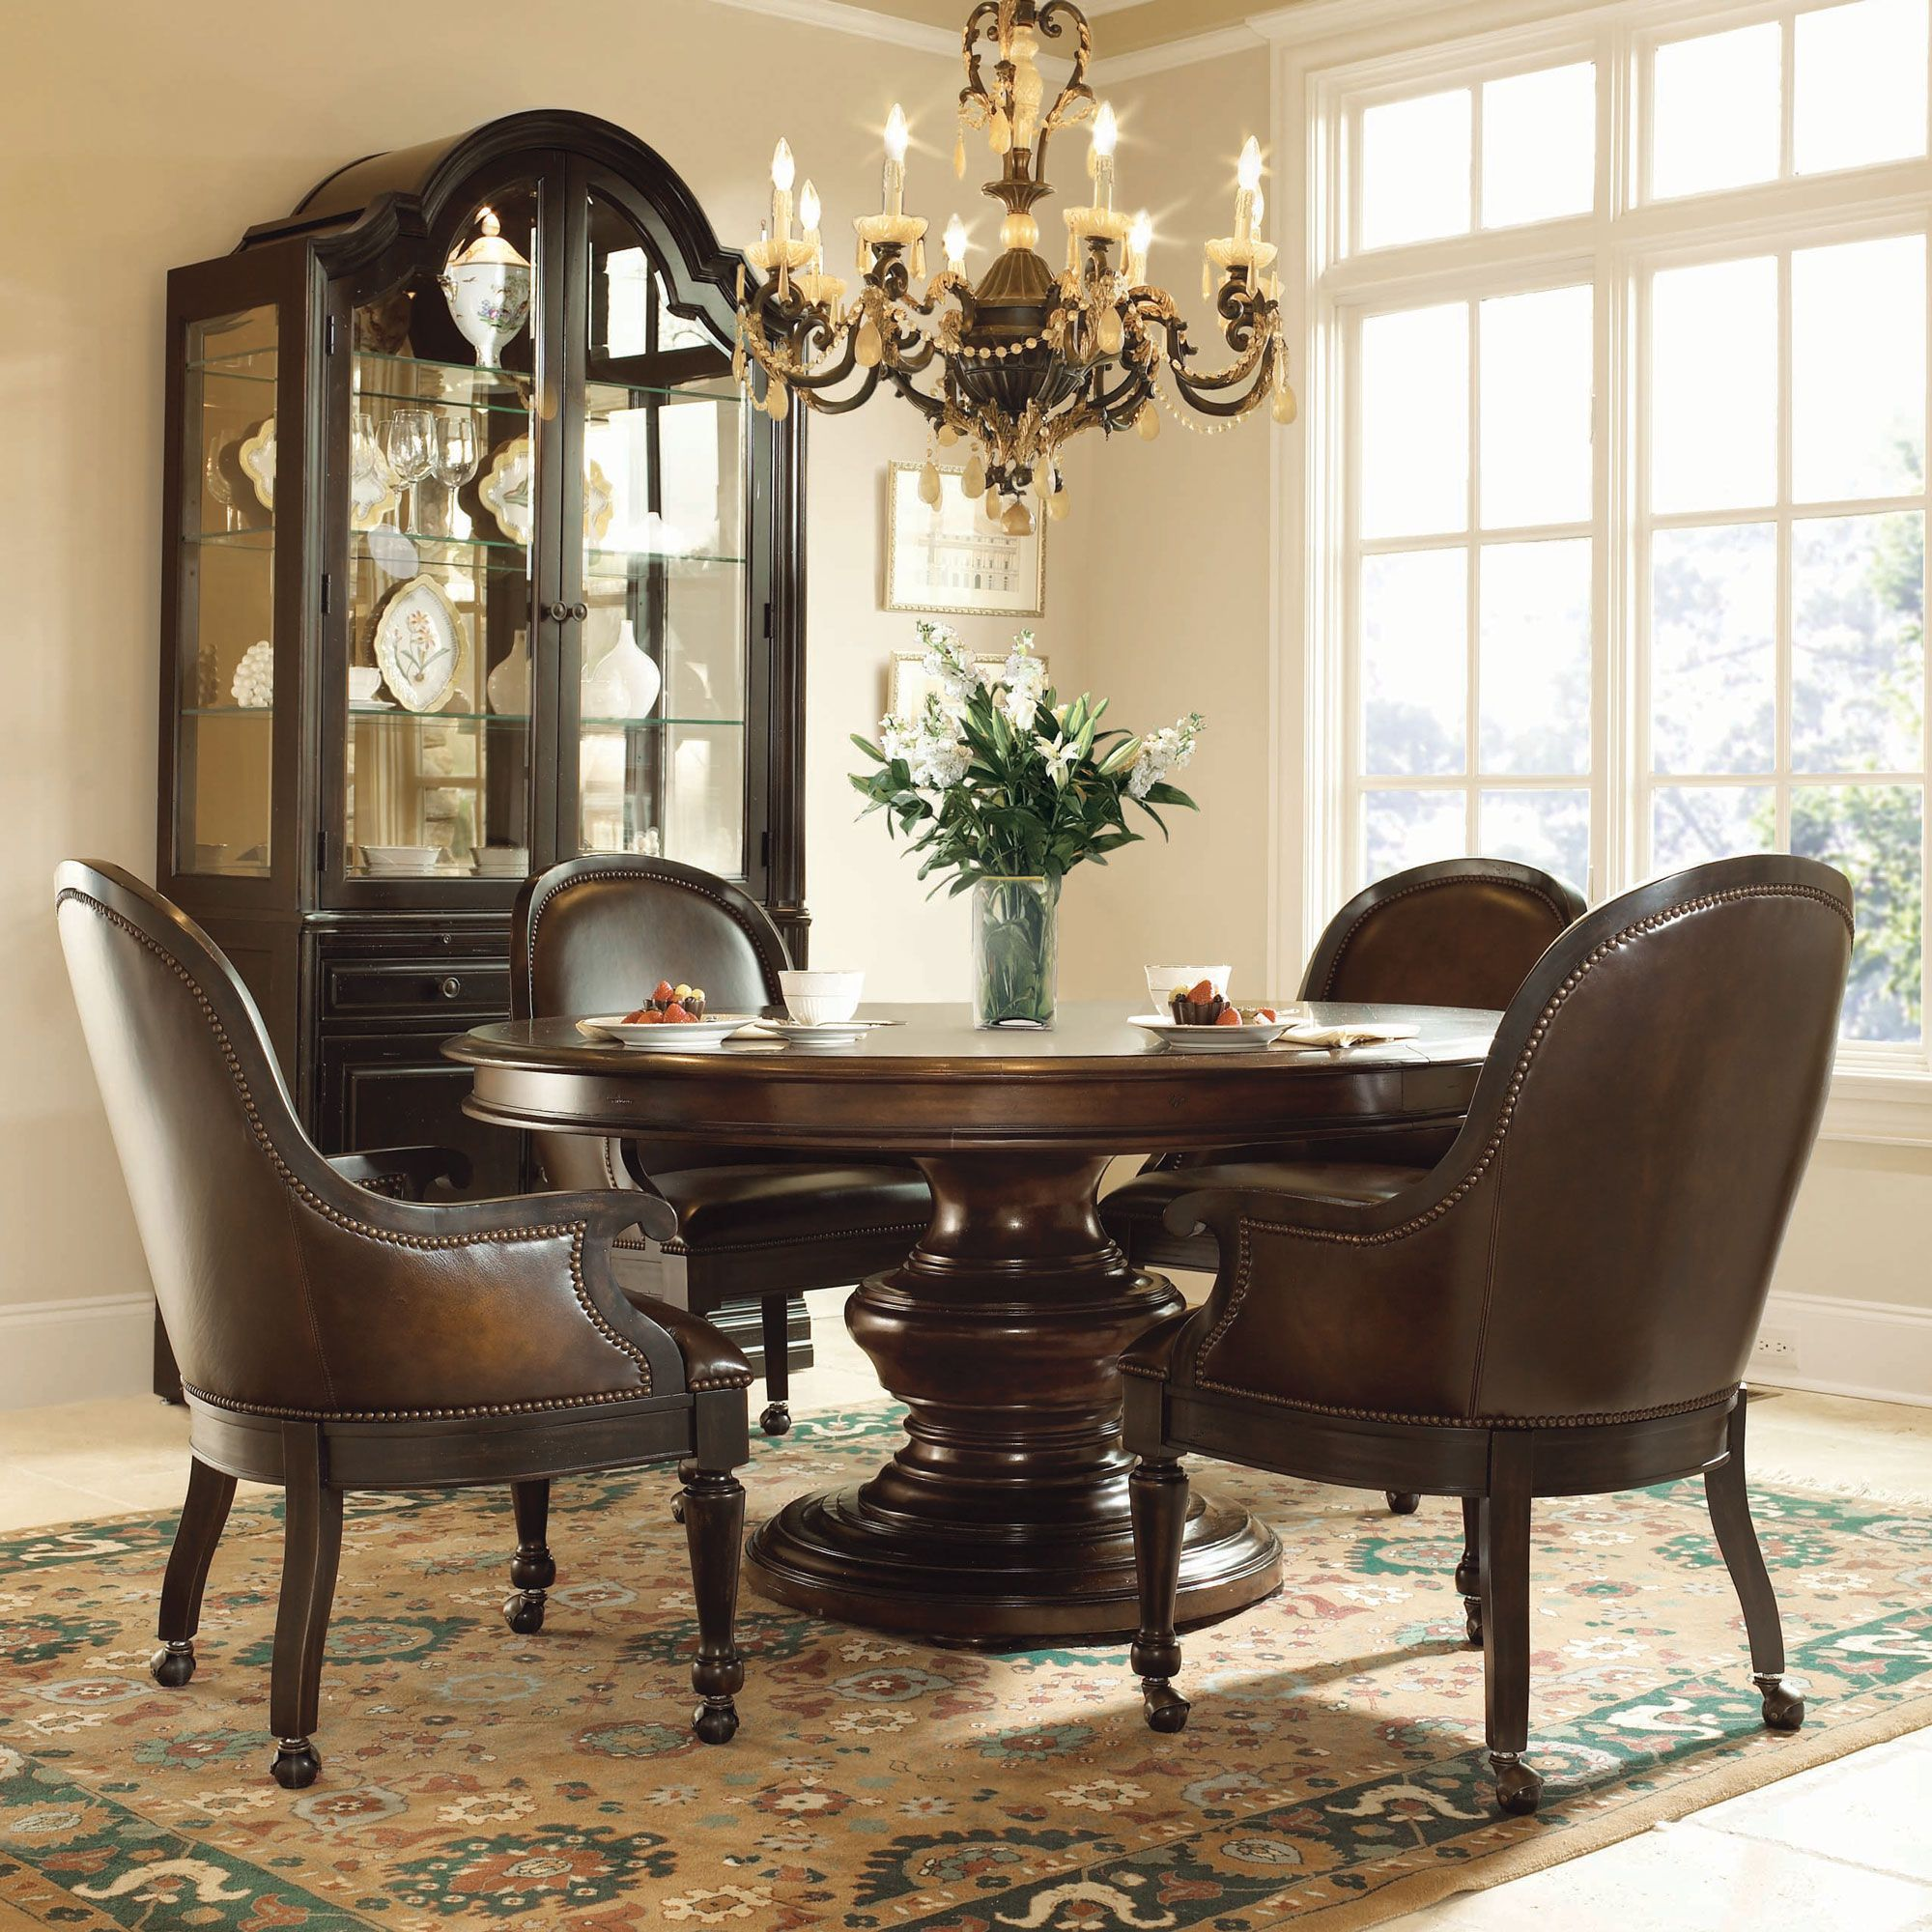 Dining Room Sets: Bernhardt Normandie Manor 5pc Round Dining Room Set With